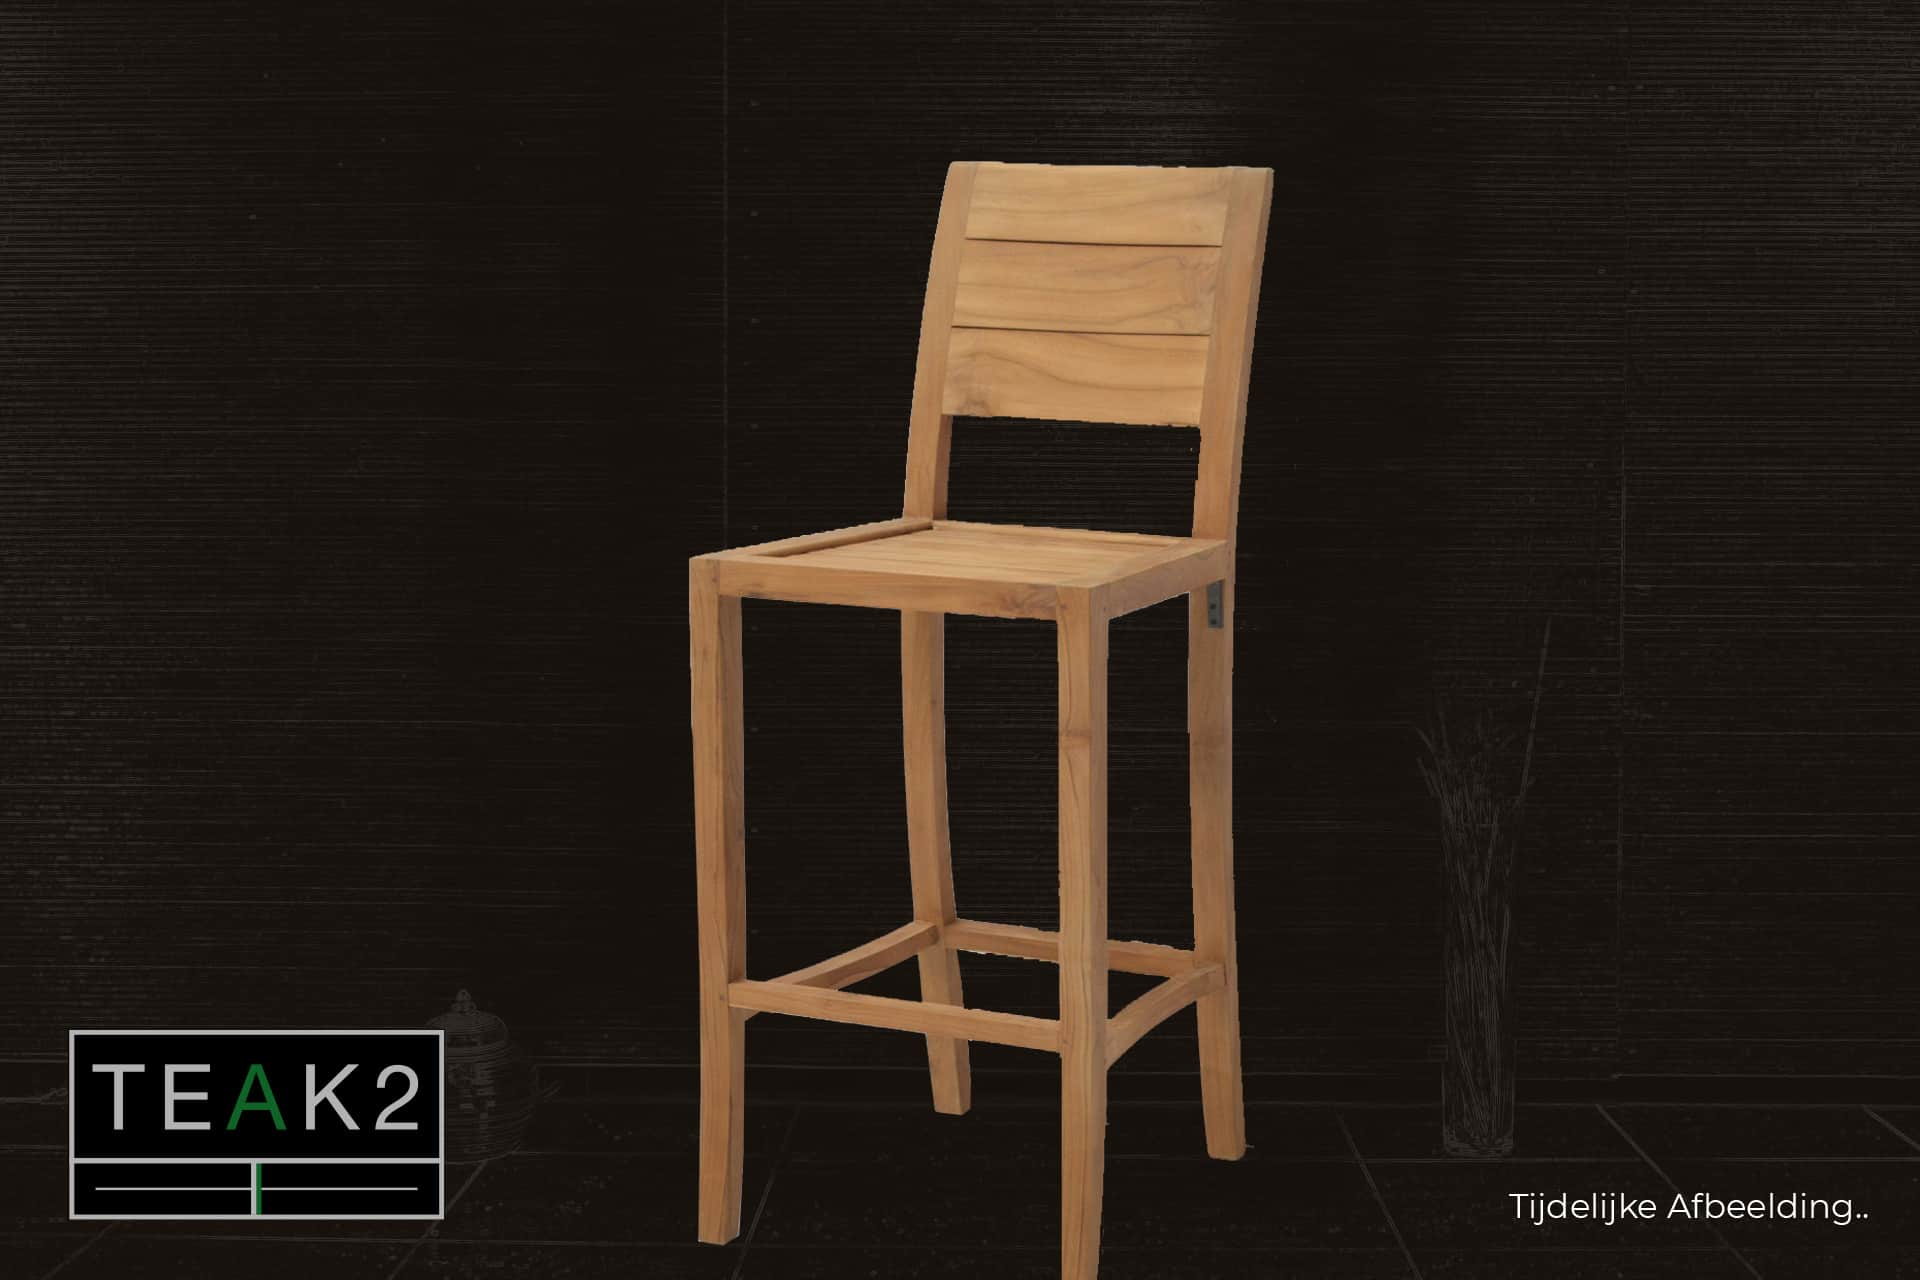 Barstool Teak Jabatan Rata | modern barstool wood in solid teak. High stool in teak and back, modern bar stool in smooth wood - TEAK2.